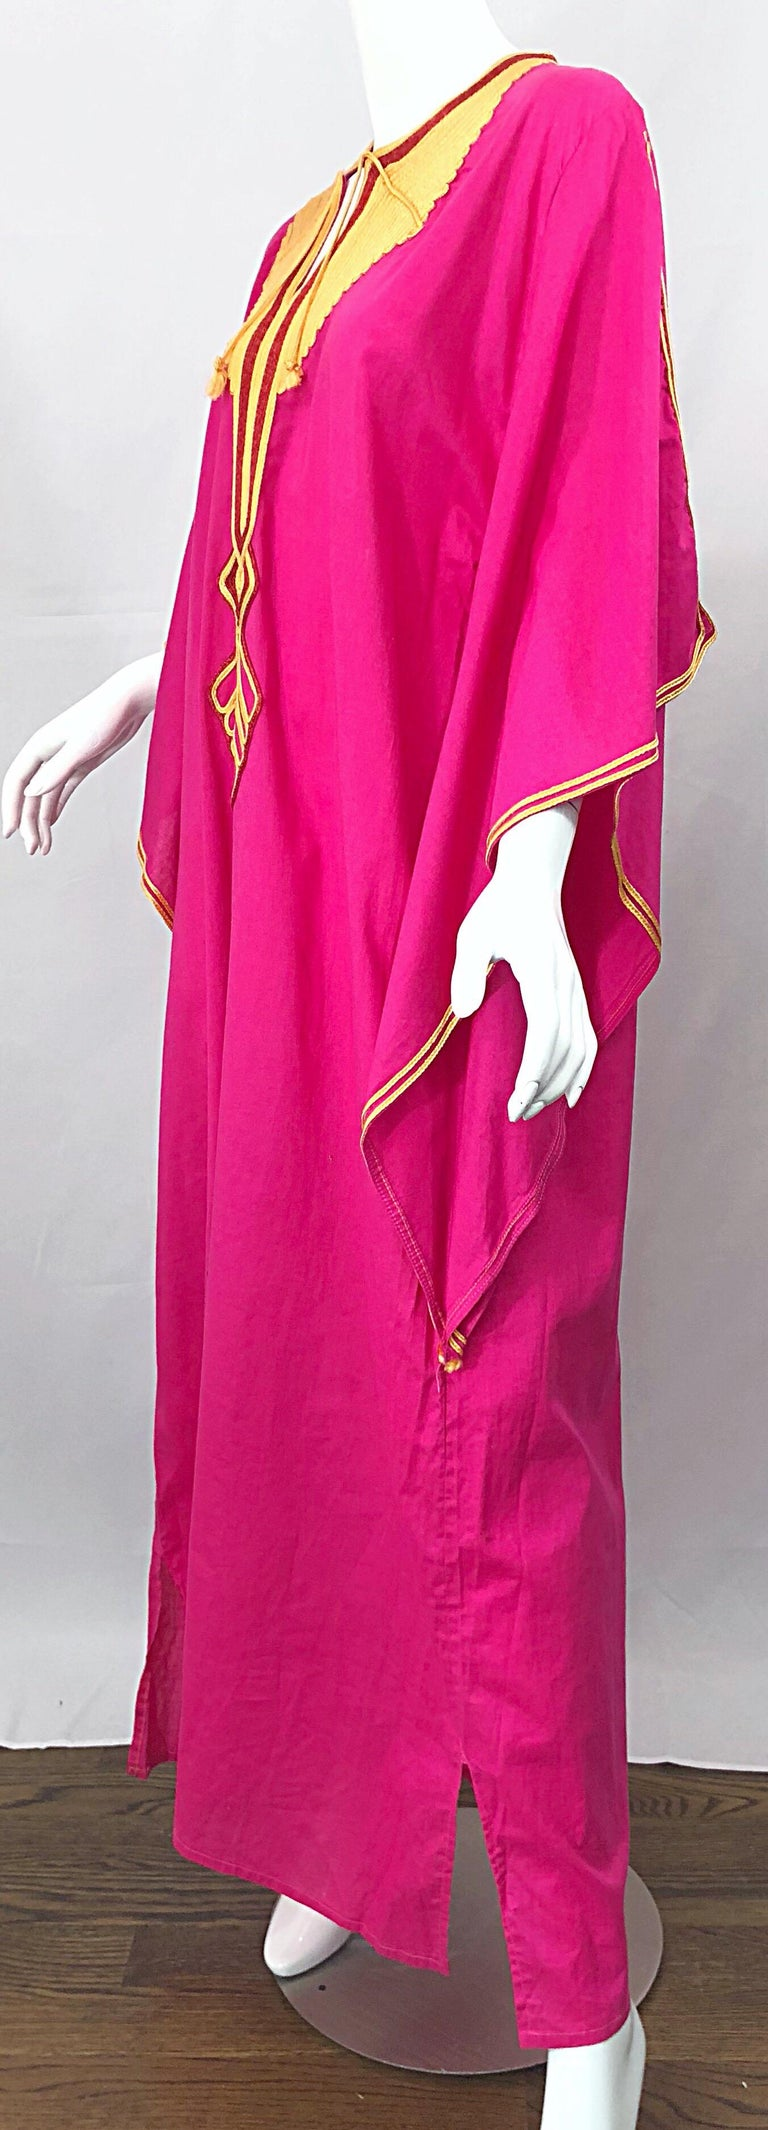 Amazing 1970s Hot Pink + Yellow Angel Sleeve Vintage 70s Kaftan Maxi Dress For Sale 6